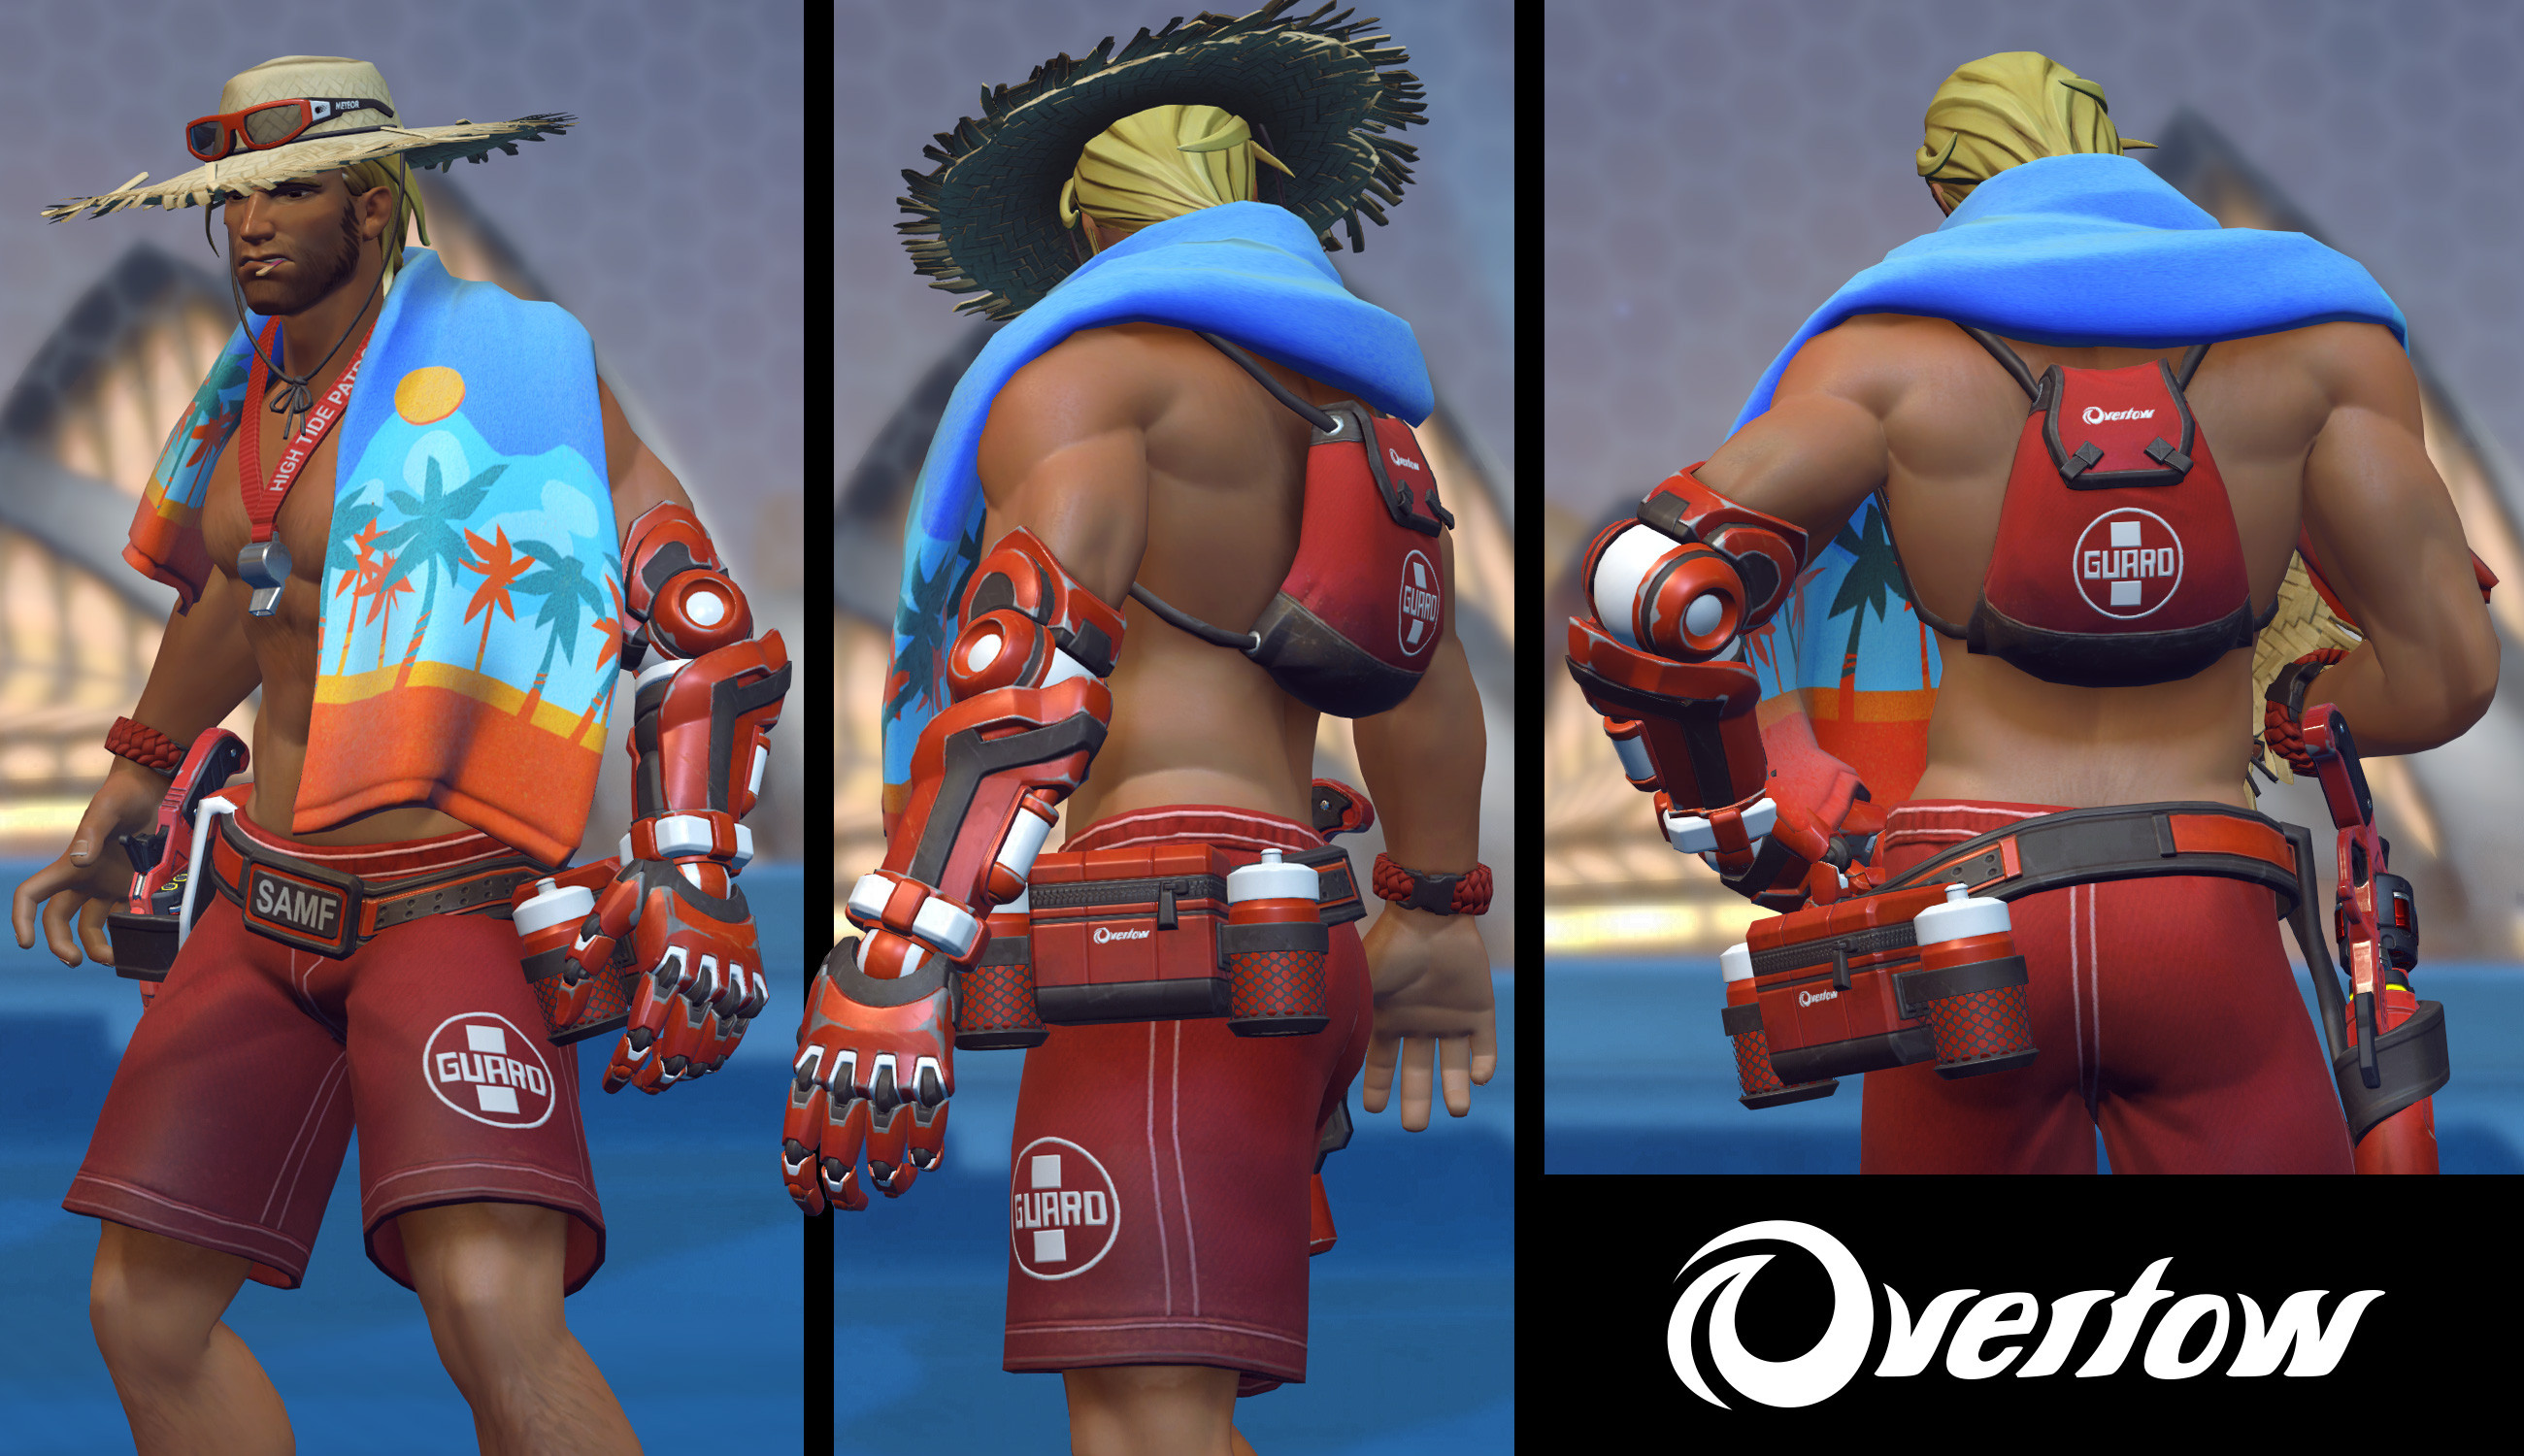 Lifeguard McCree for the Overwatch 2017 Summer Event. I also designed and created the Overtow logo for the gear.